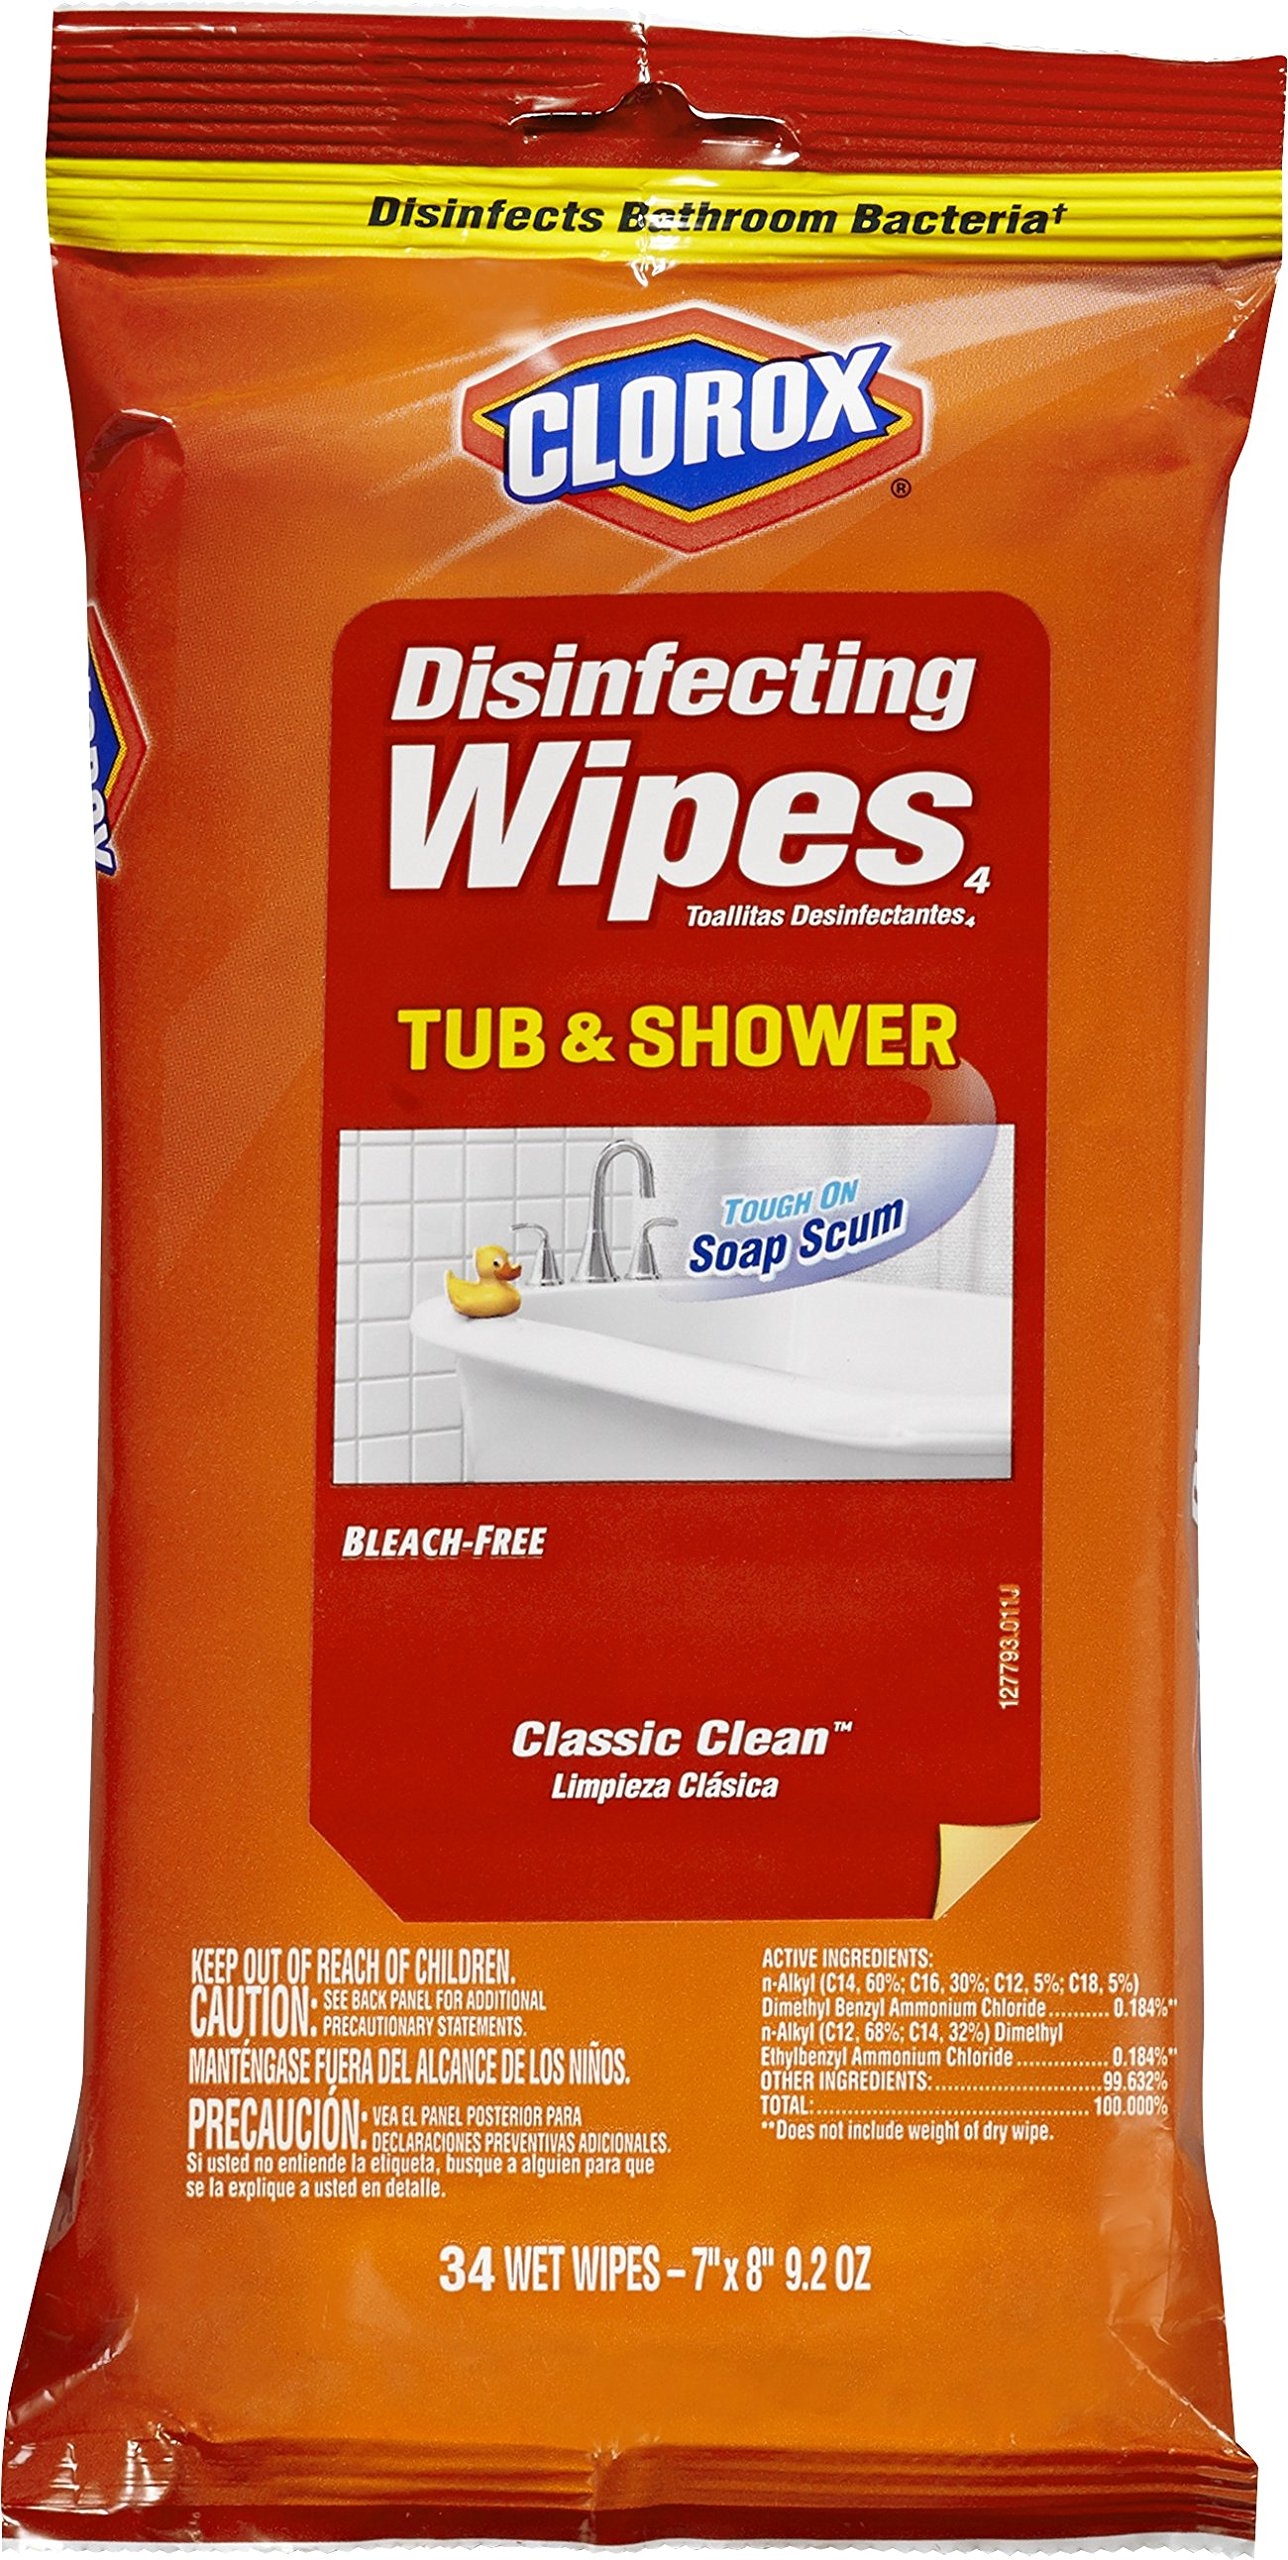 Clorox Disinfecting Wipes, Tub and Shower, Classic Clean, 34 Count (Pack of 12)